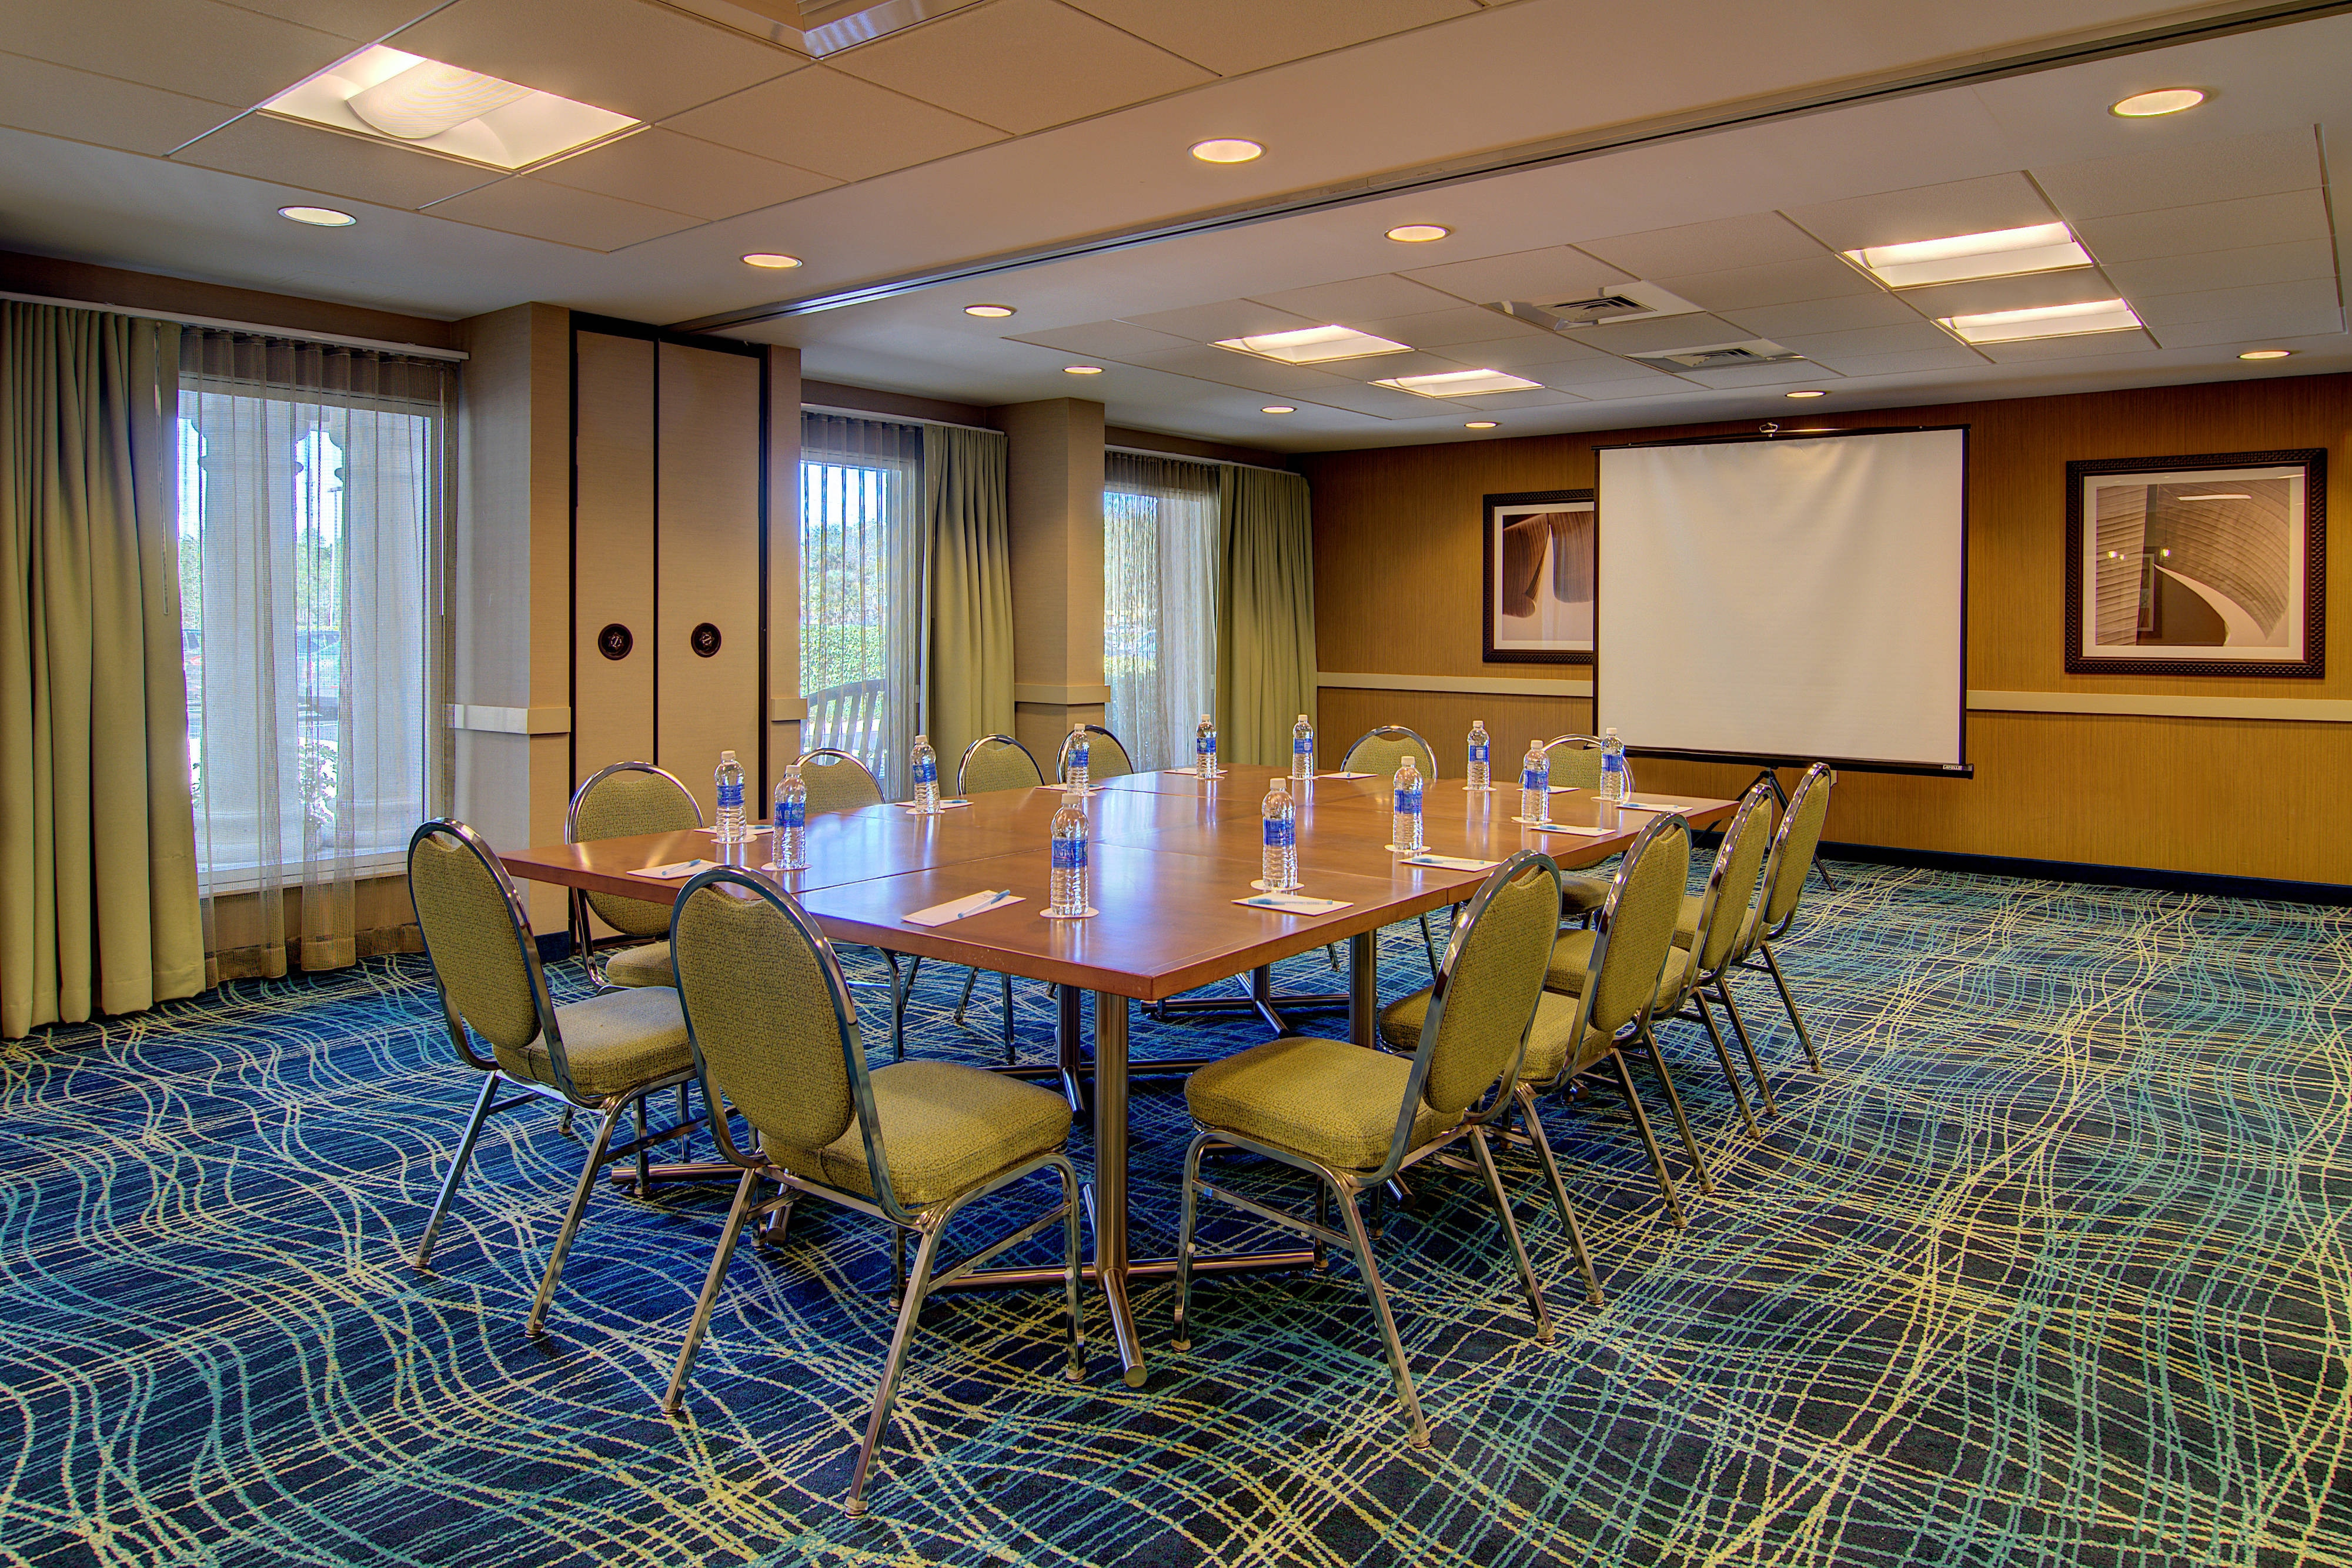 SpringHill Suites Boca Raton Meeting Space